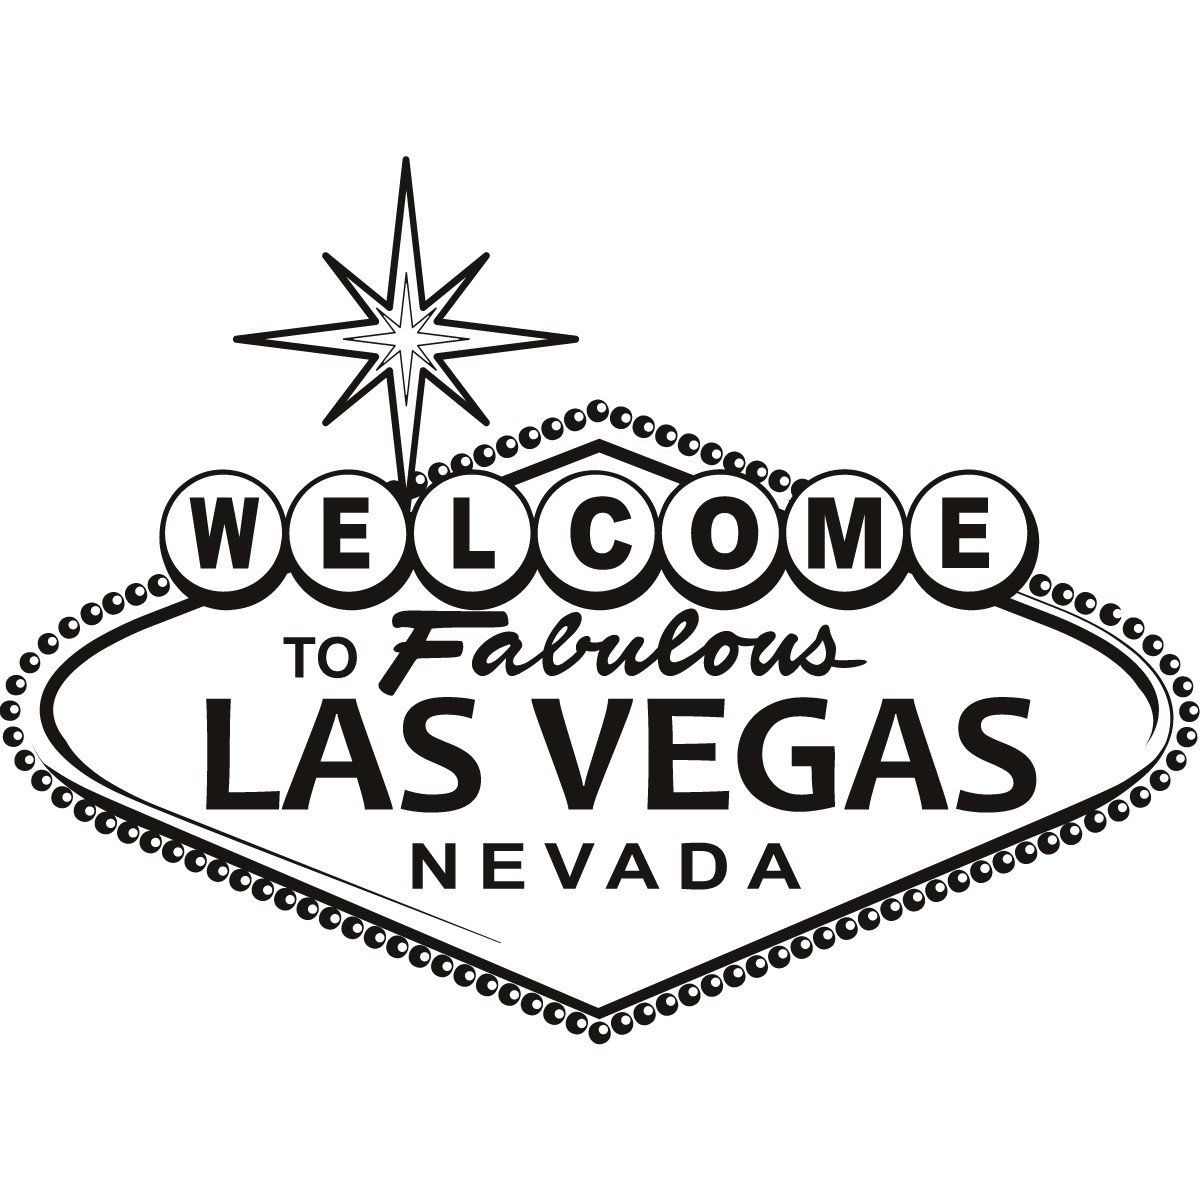 Las vegas sign wall art sticker vinyl stickers h 50cm w 50cm